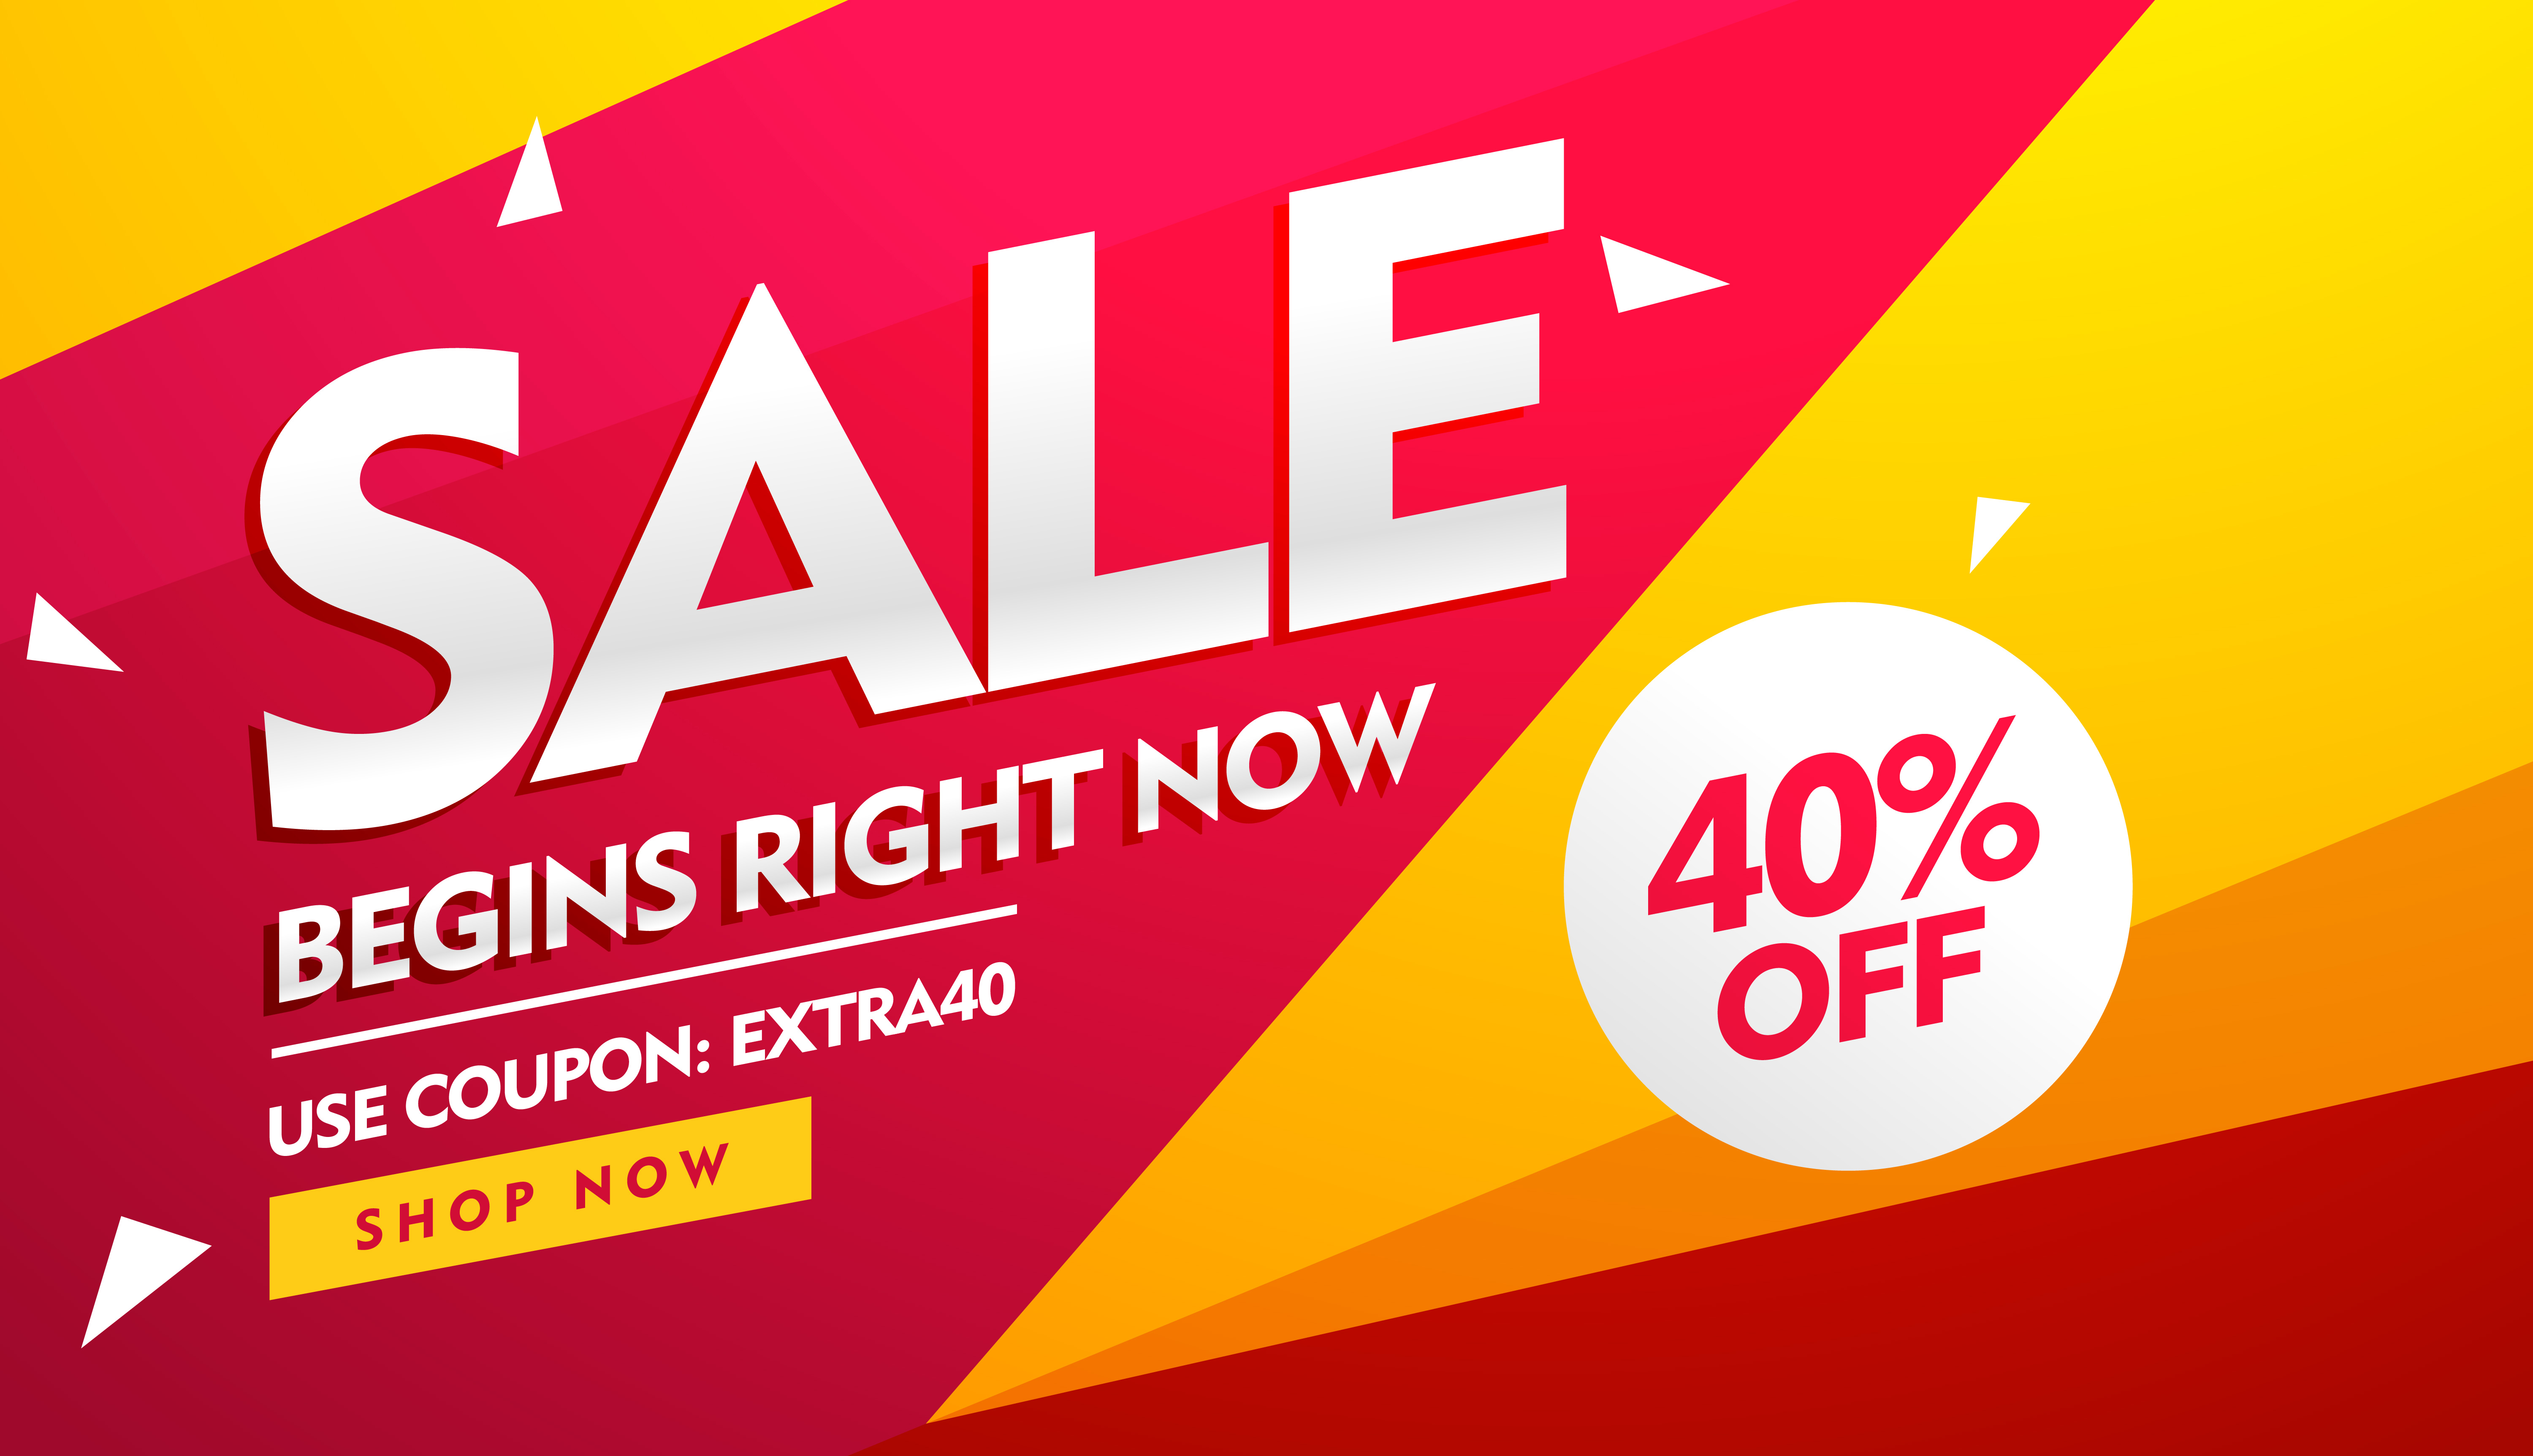 Sale voucher discount and offers banner design download for Outlet design online